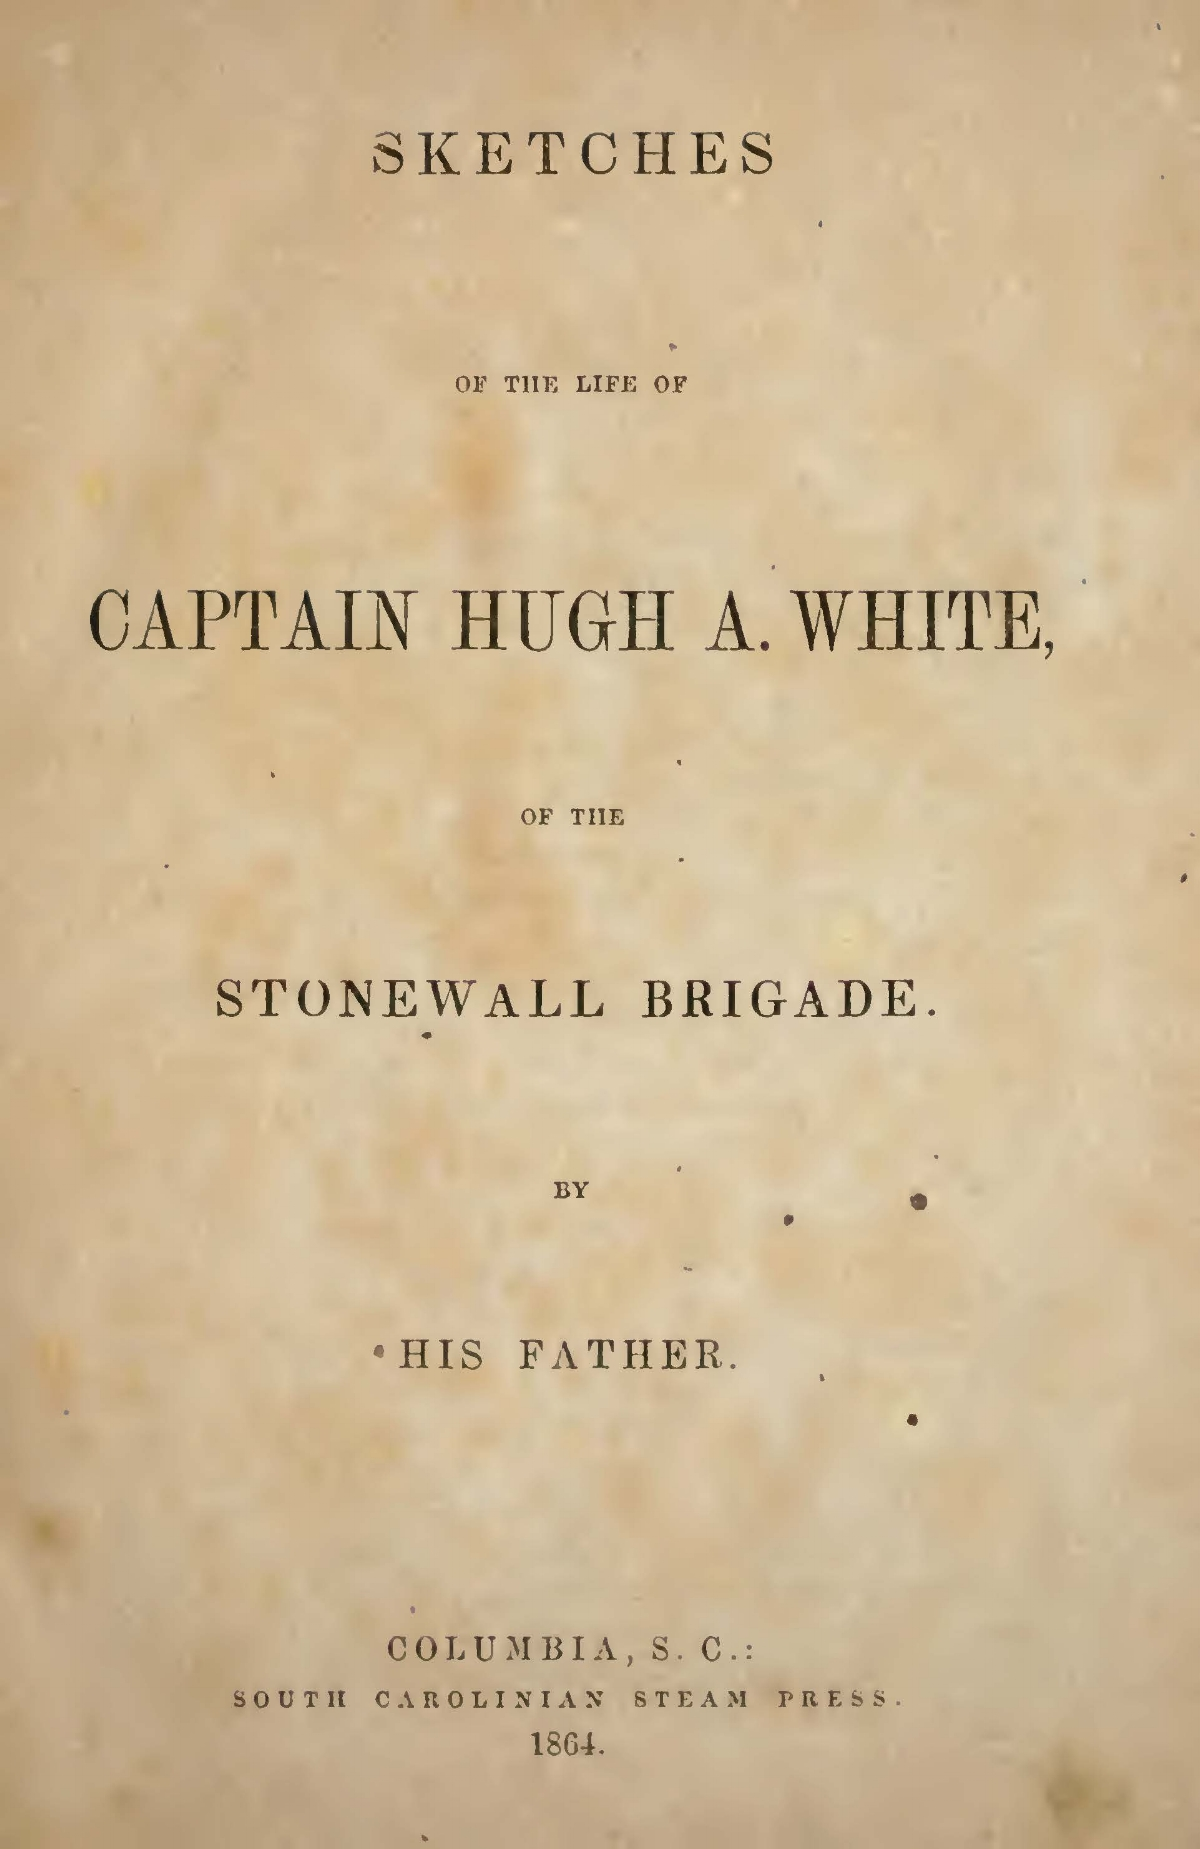 White, William Spotswood, Sketches of the Life of Captain Hugh A. White Title Page.jpg